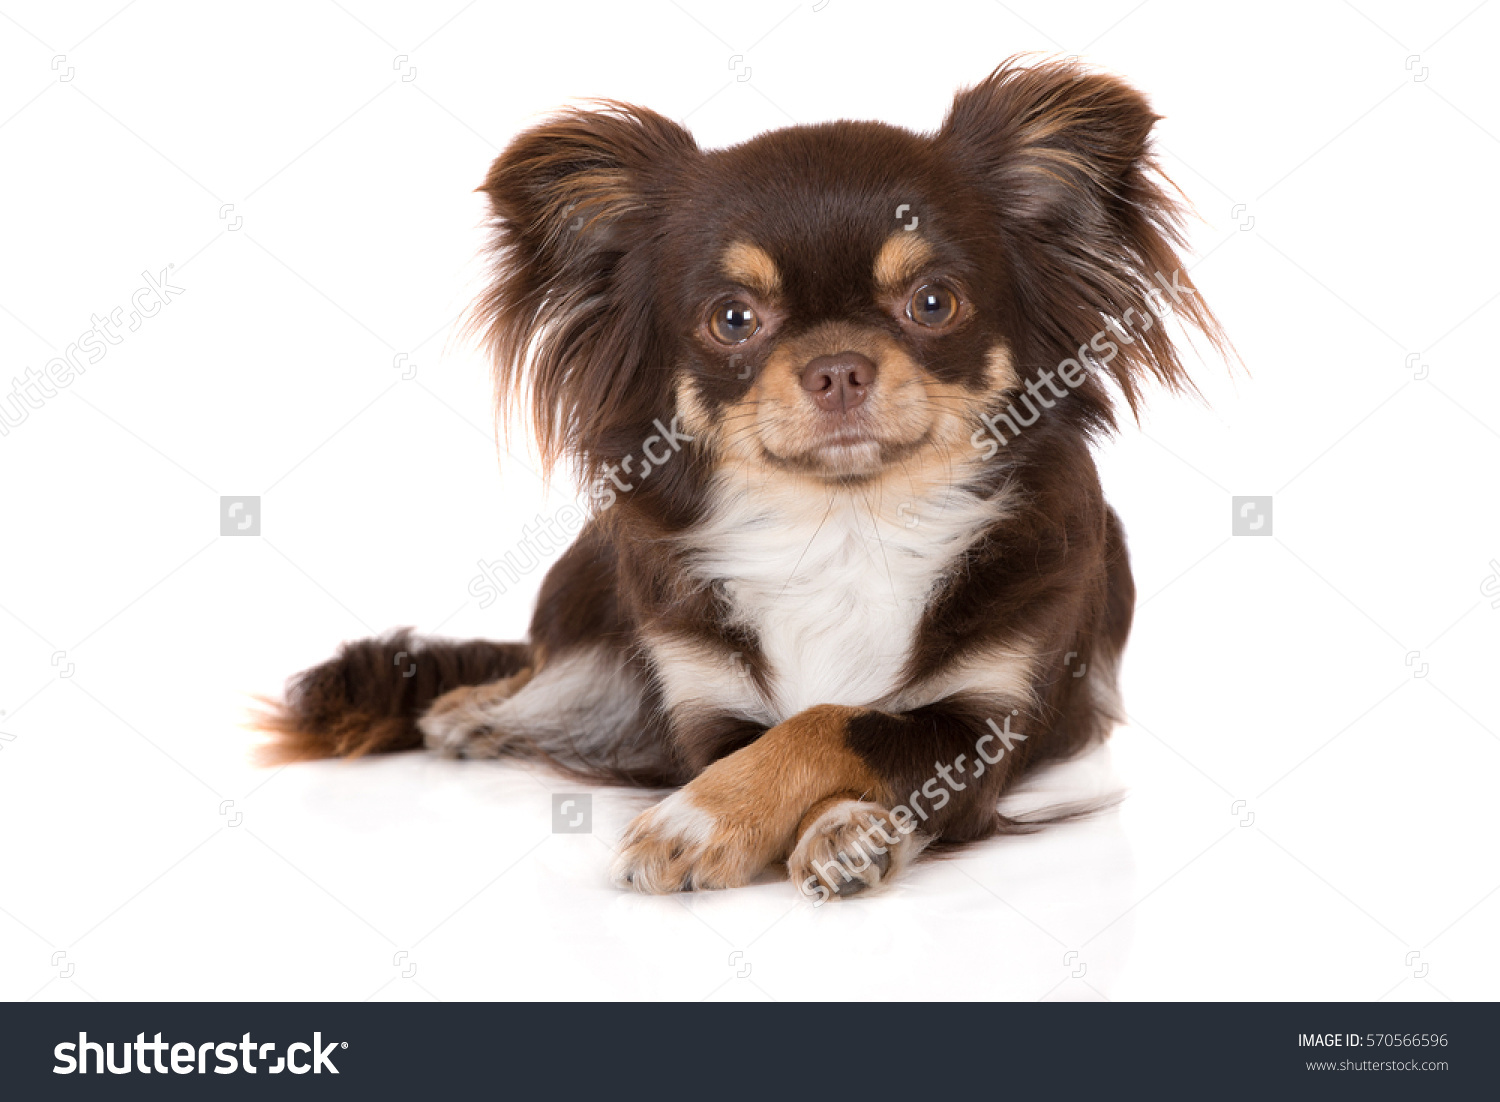 stock-photo-brown-tricolor-chihuahua-dog-lying-down-with-crossed-paws-on-white-570566596.jpg